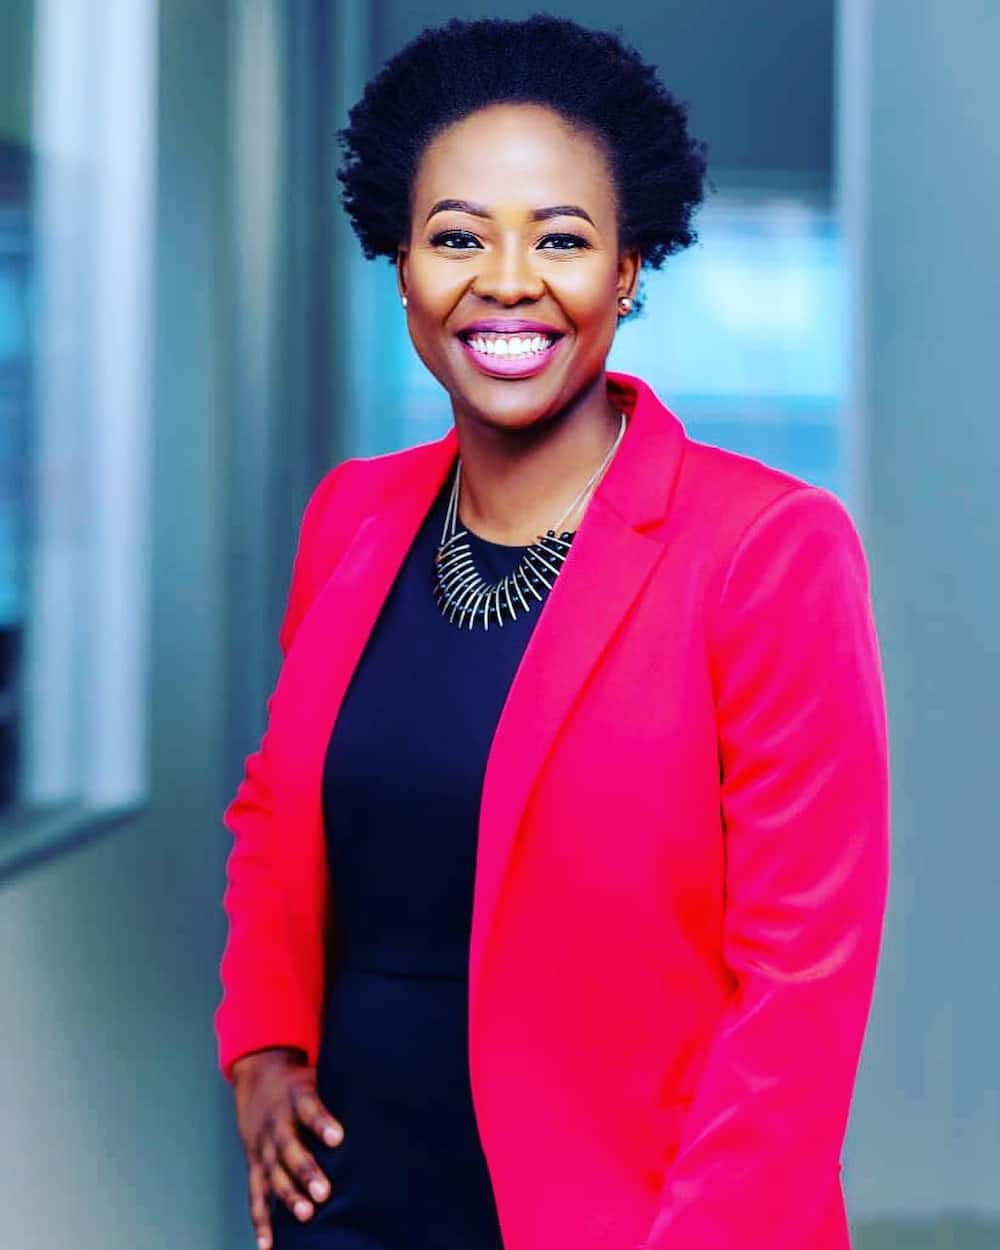 5 best motivational speakers in South Africa 2019